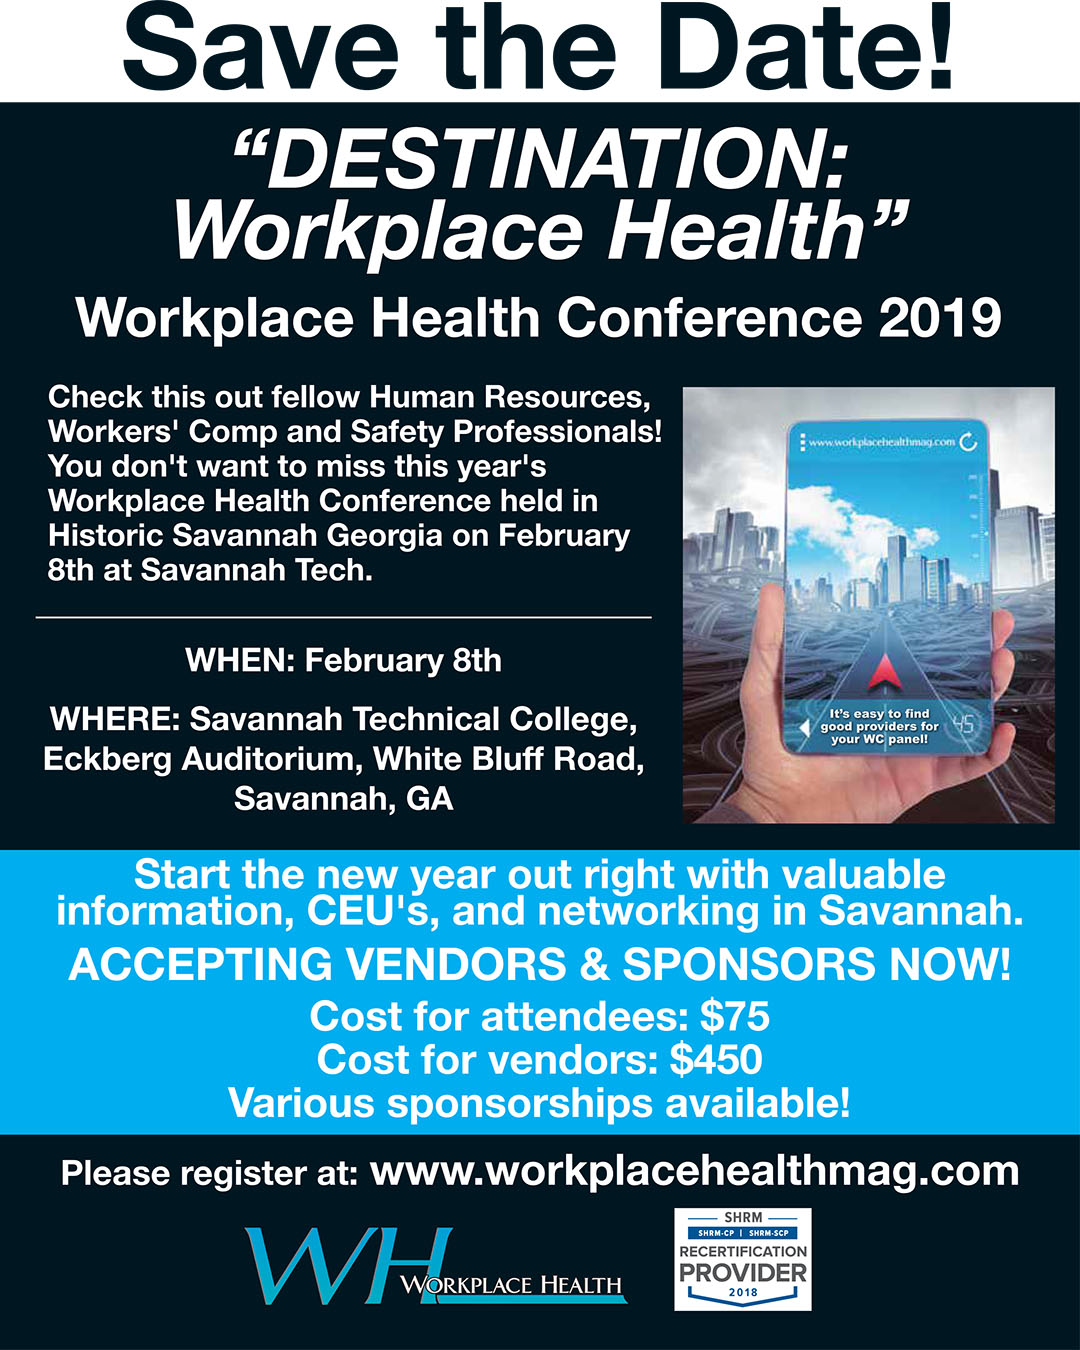 Destination Workplace Health Conference 2019 flyer